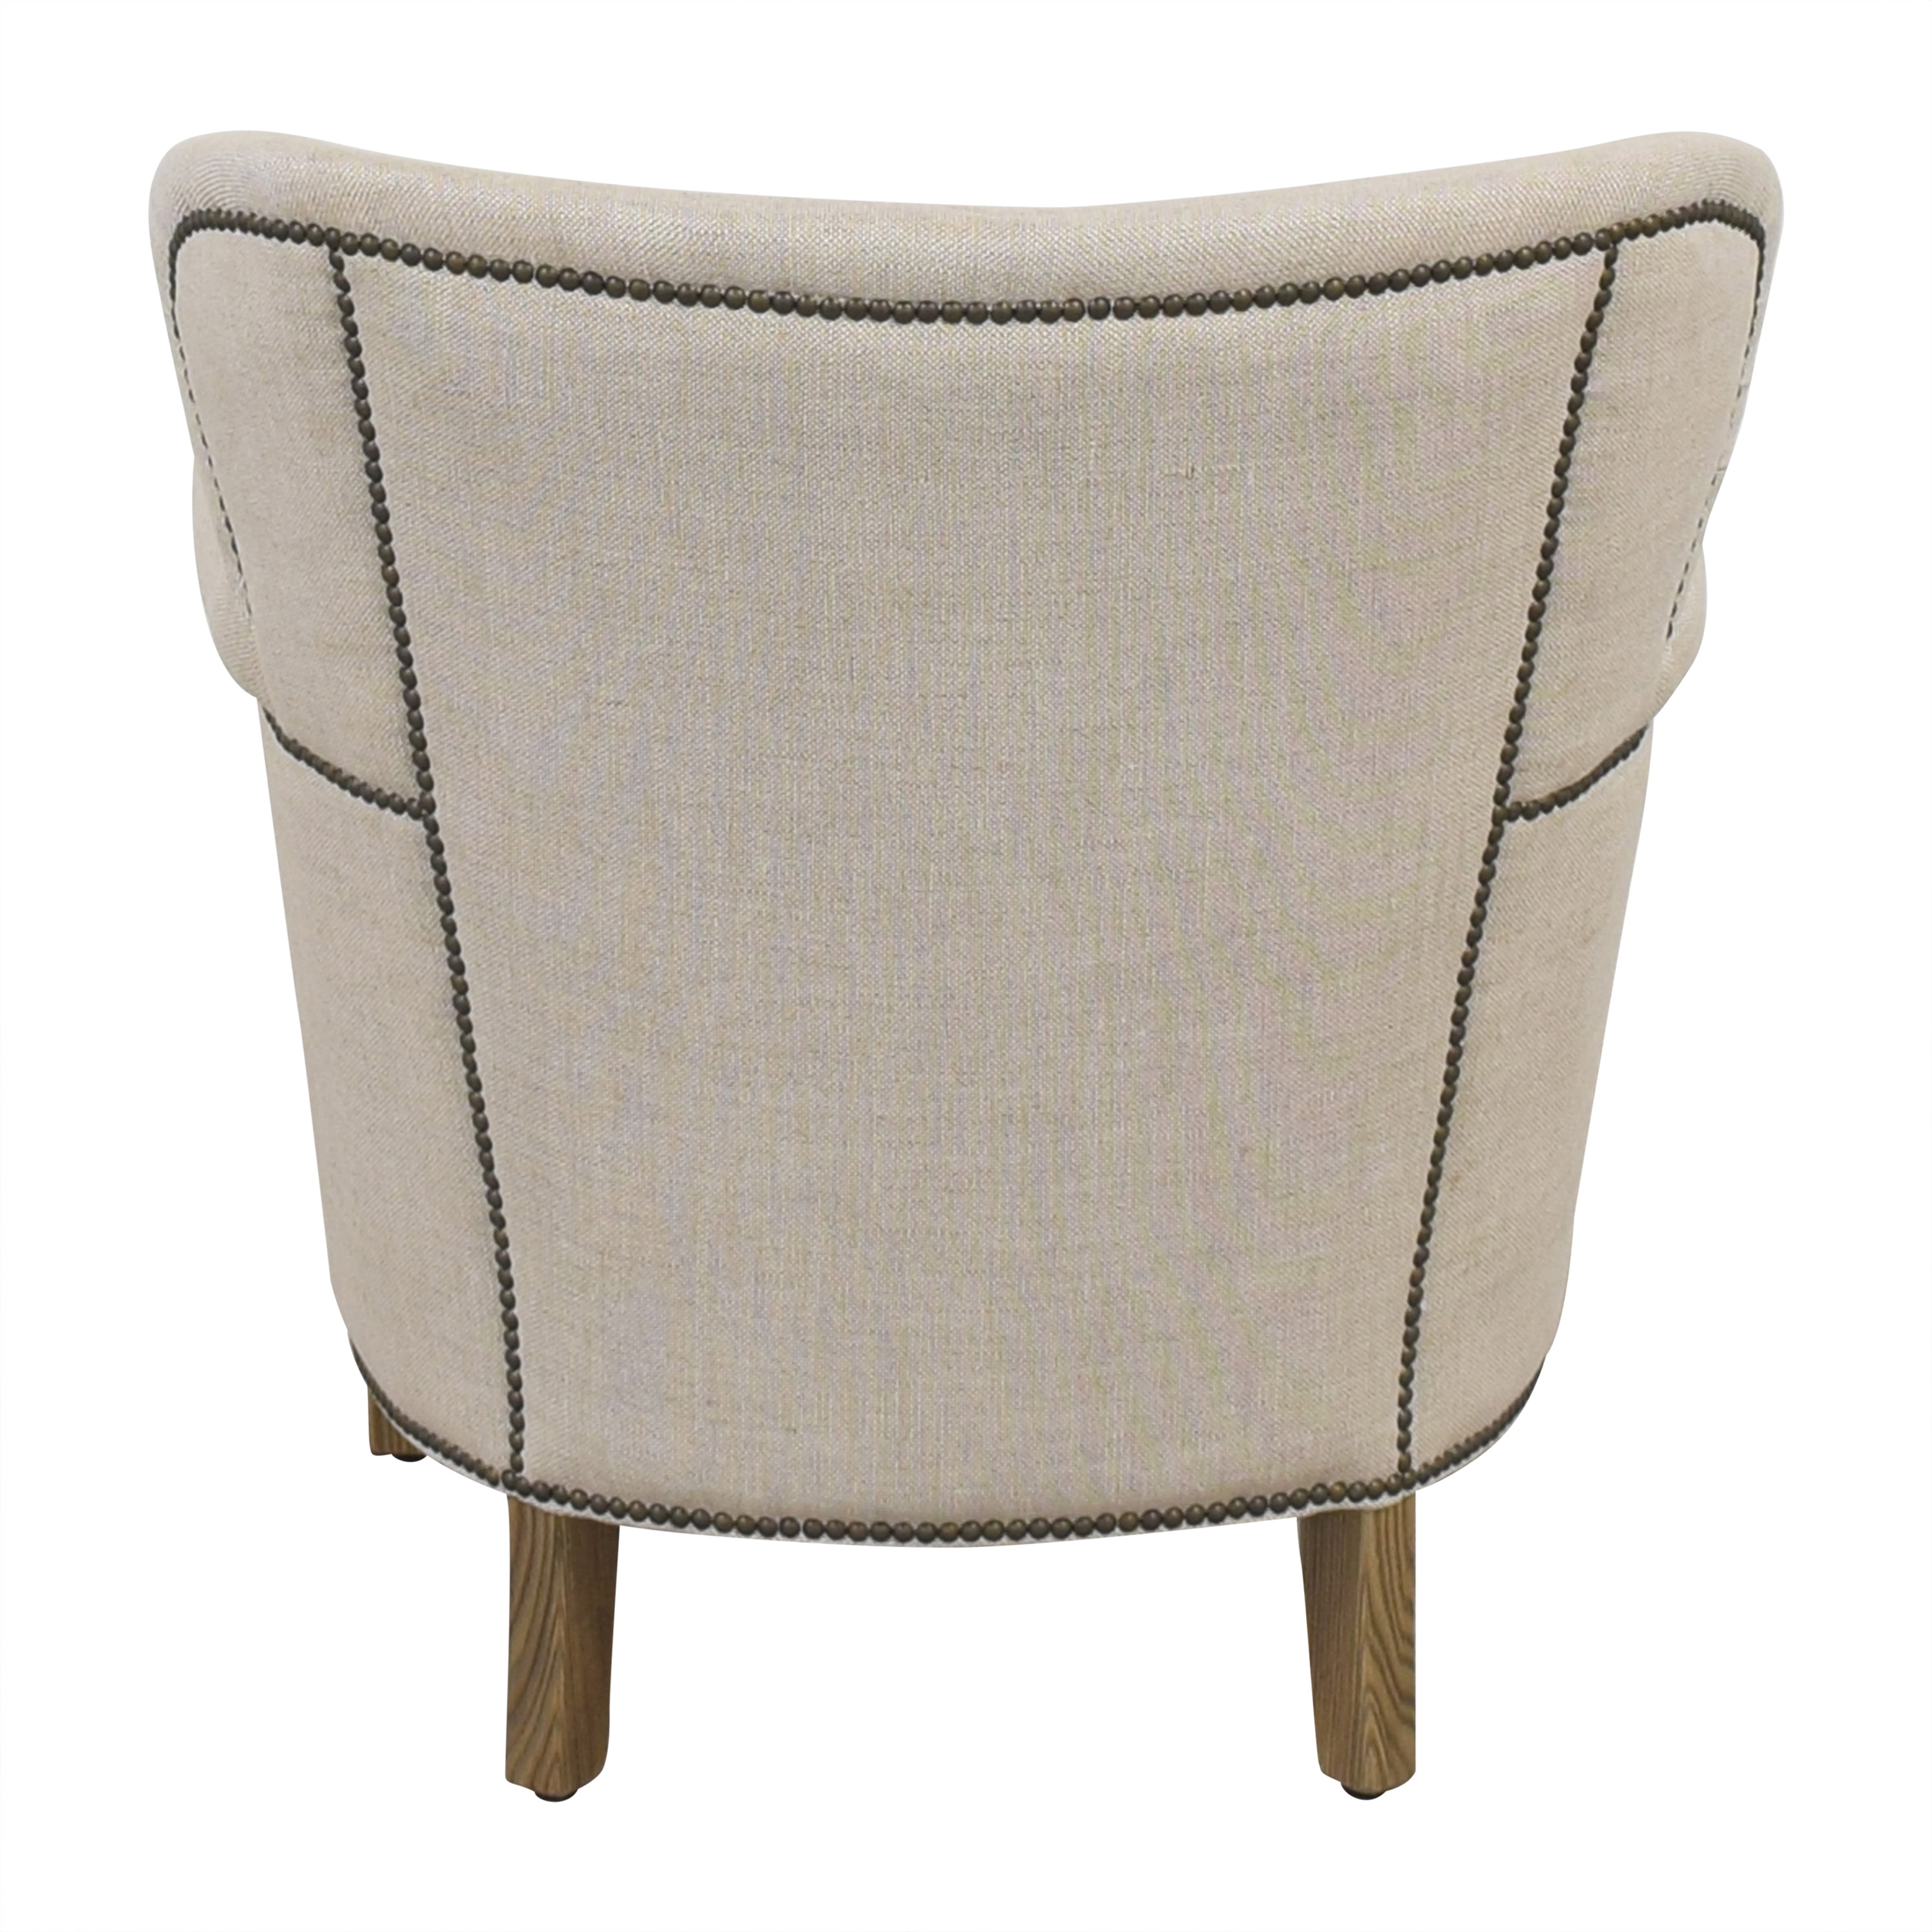 Restoration Hardware Restoration Hardware Professors Chair with Nailheads pa